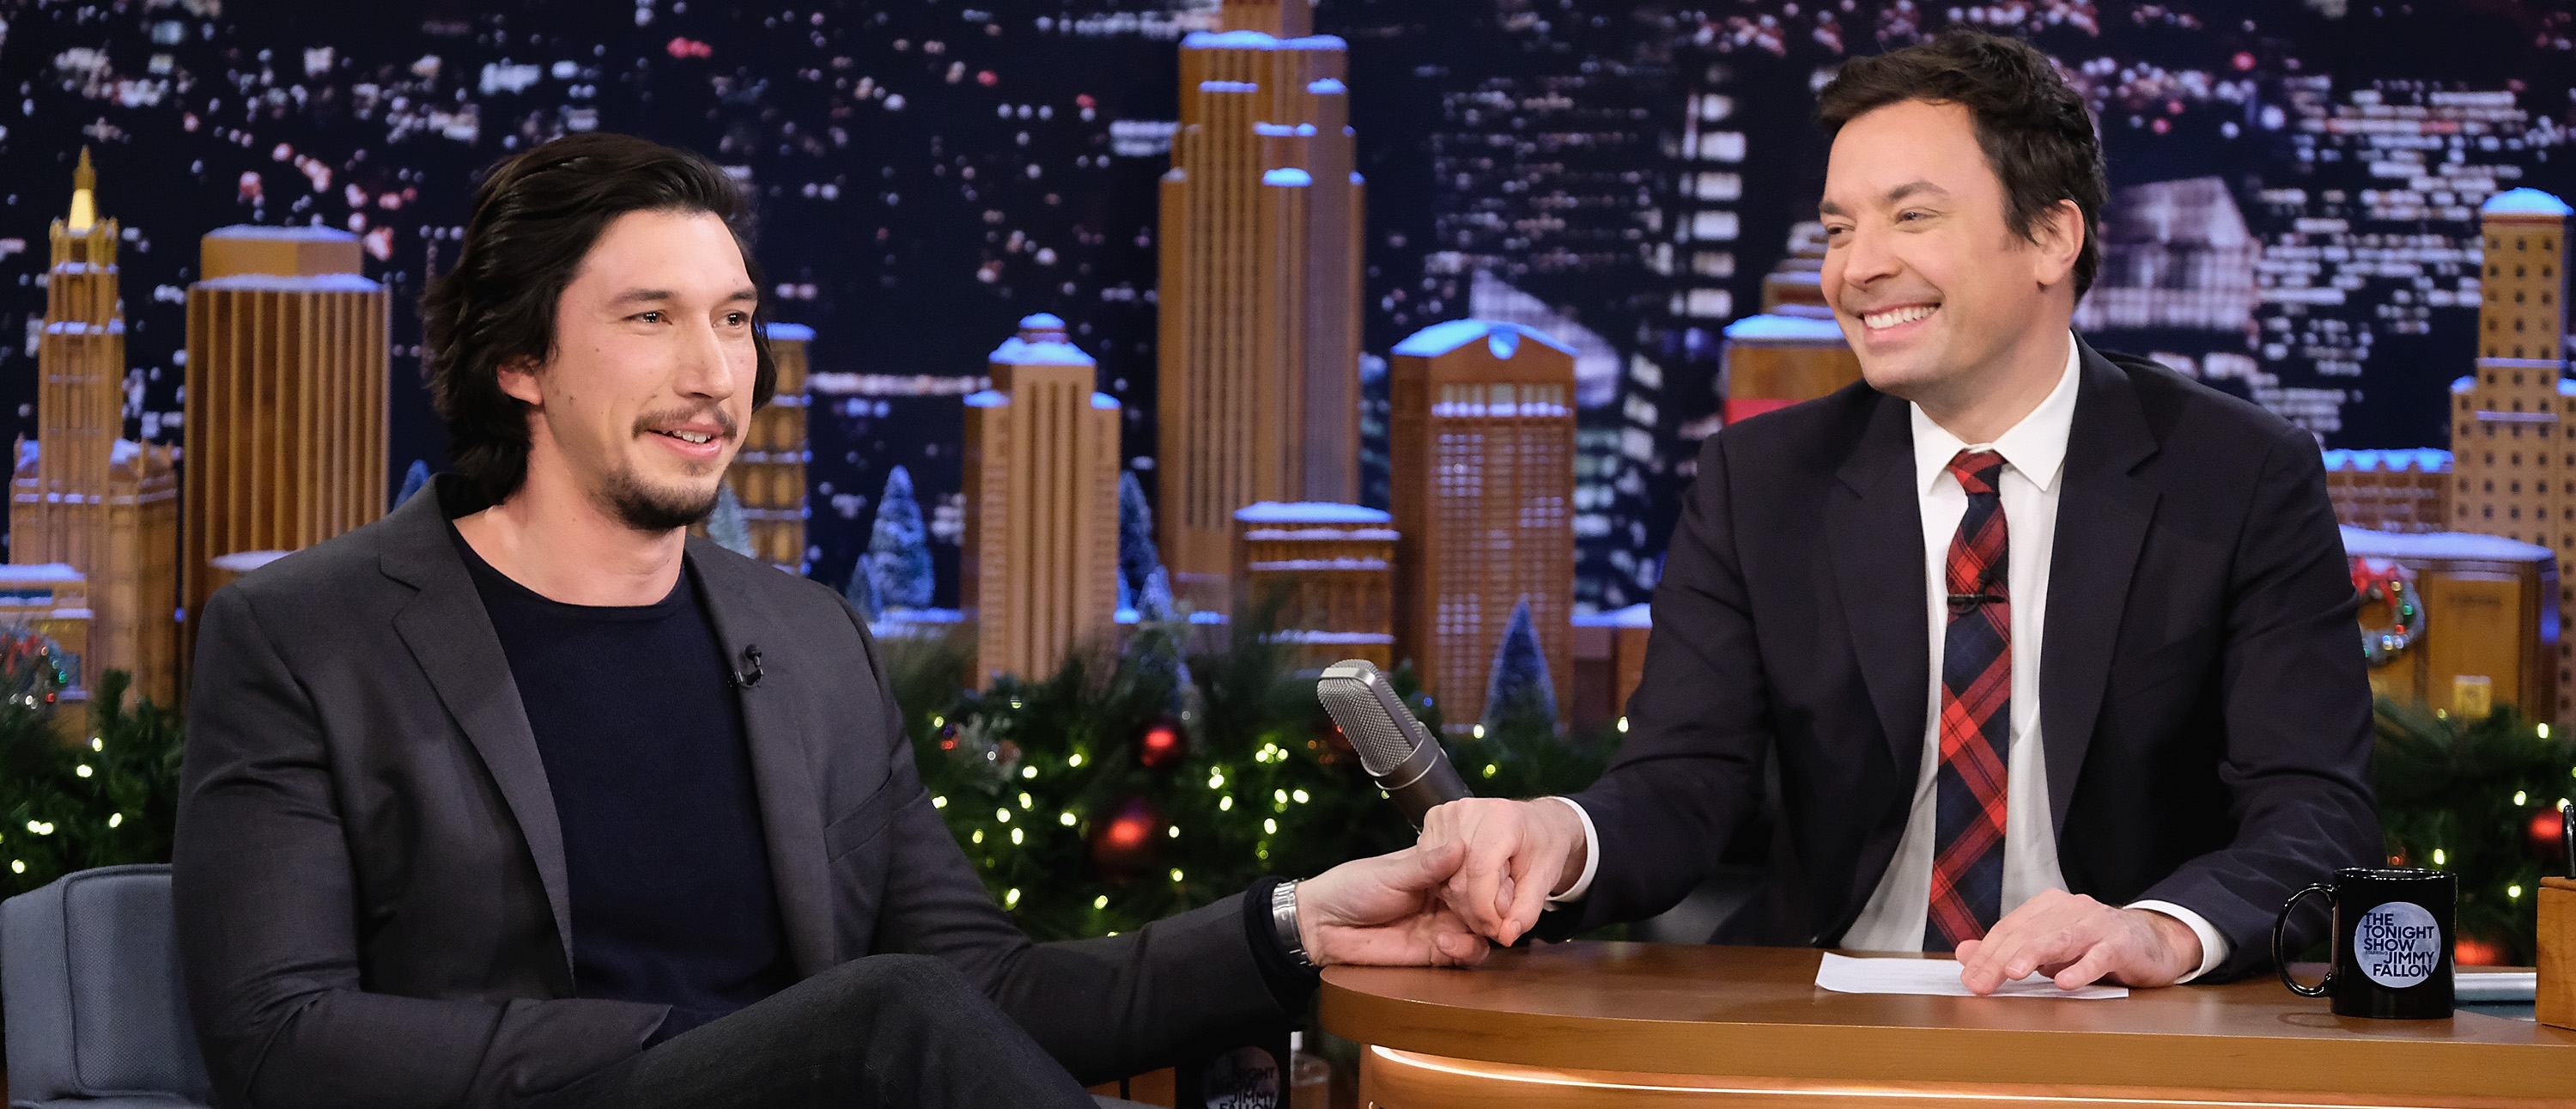 """Adam Driver Visits """"The Tonight Show Starring Jimmy Fallon""""(Photo: Theo Wargo/Getty Images for NBC)"""